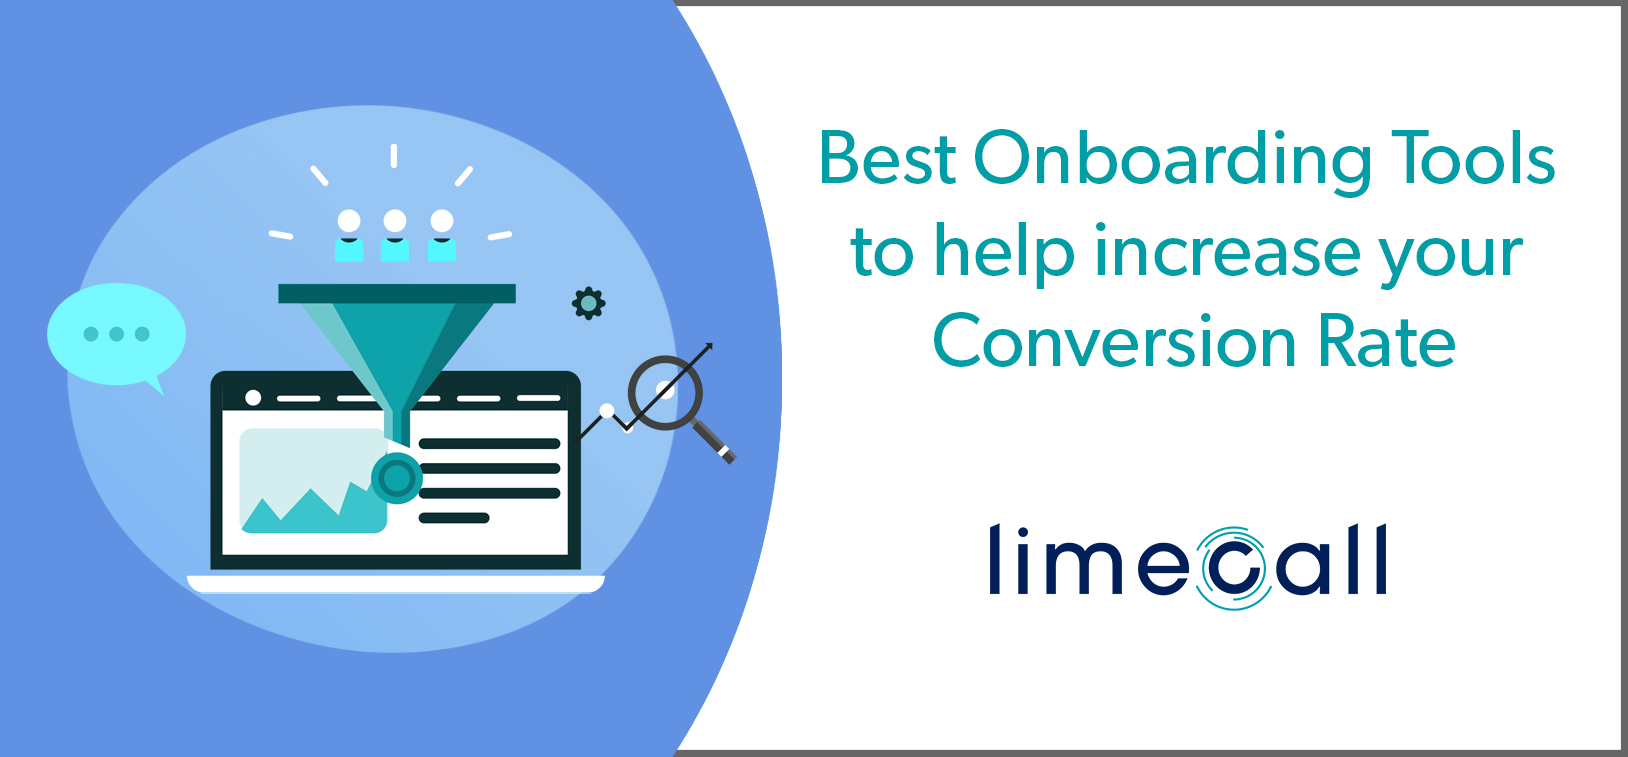 best onboarding tools to increase your conversion rate